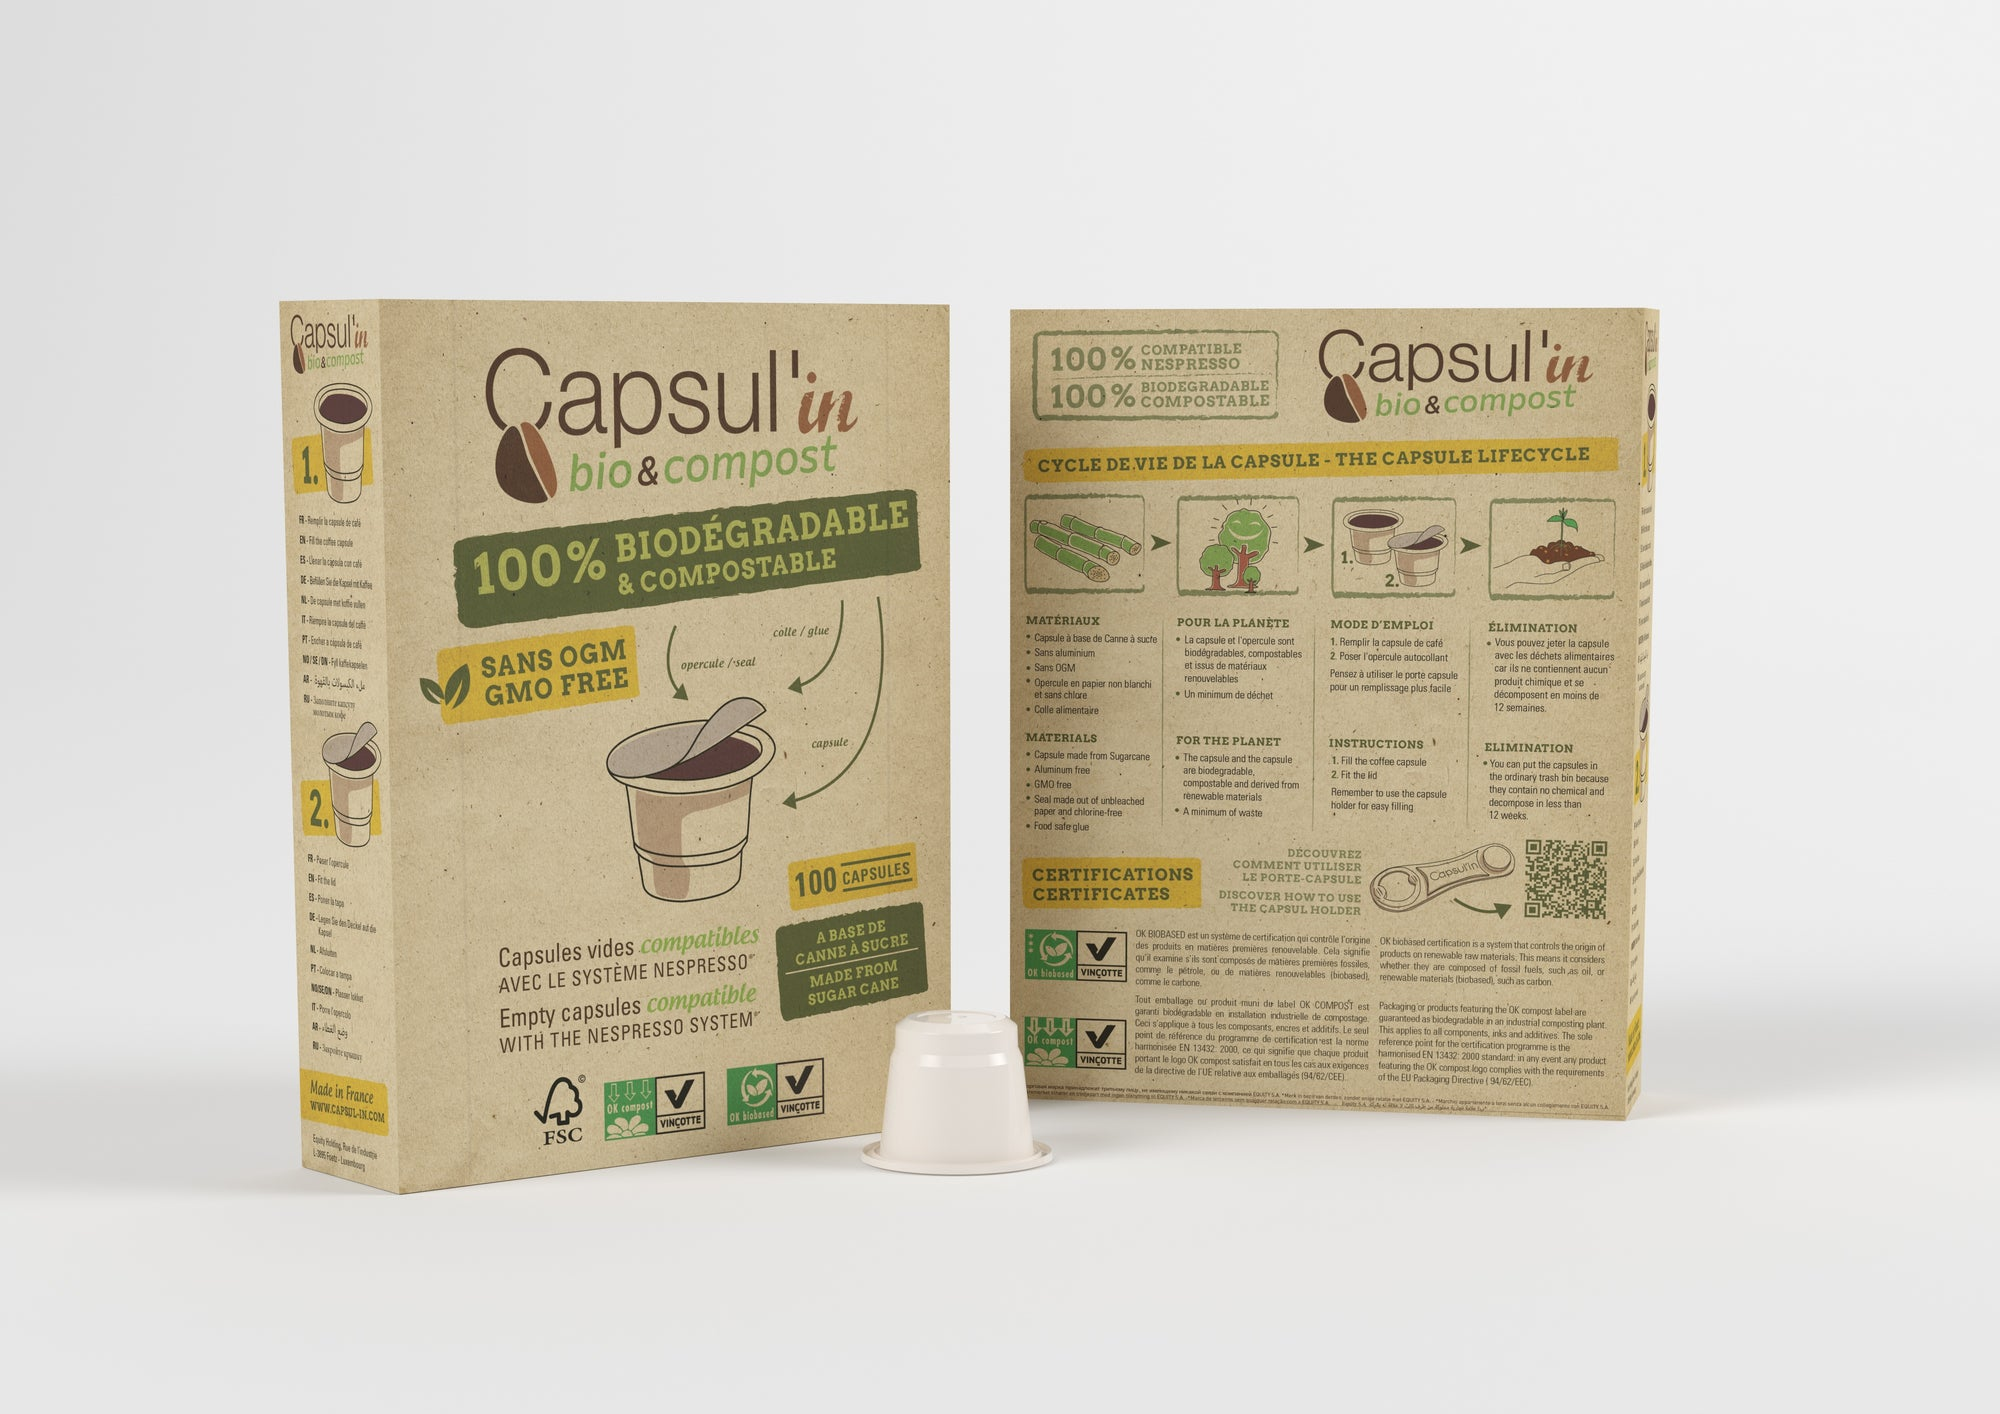 D.I.Y. Set of 200 Capsul'in Biodegradable & Compostable Empty Capsules, 216 lids and 2 tamper/holder